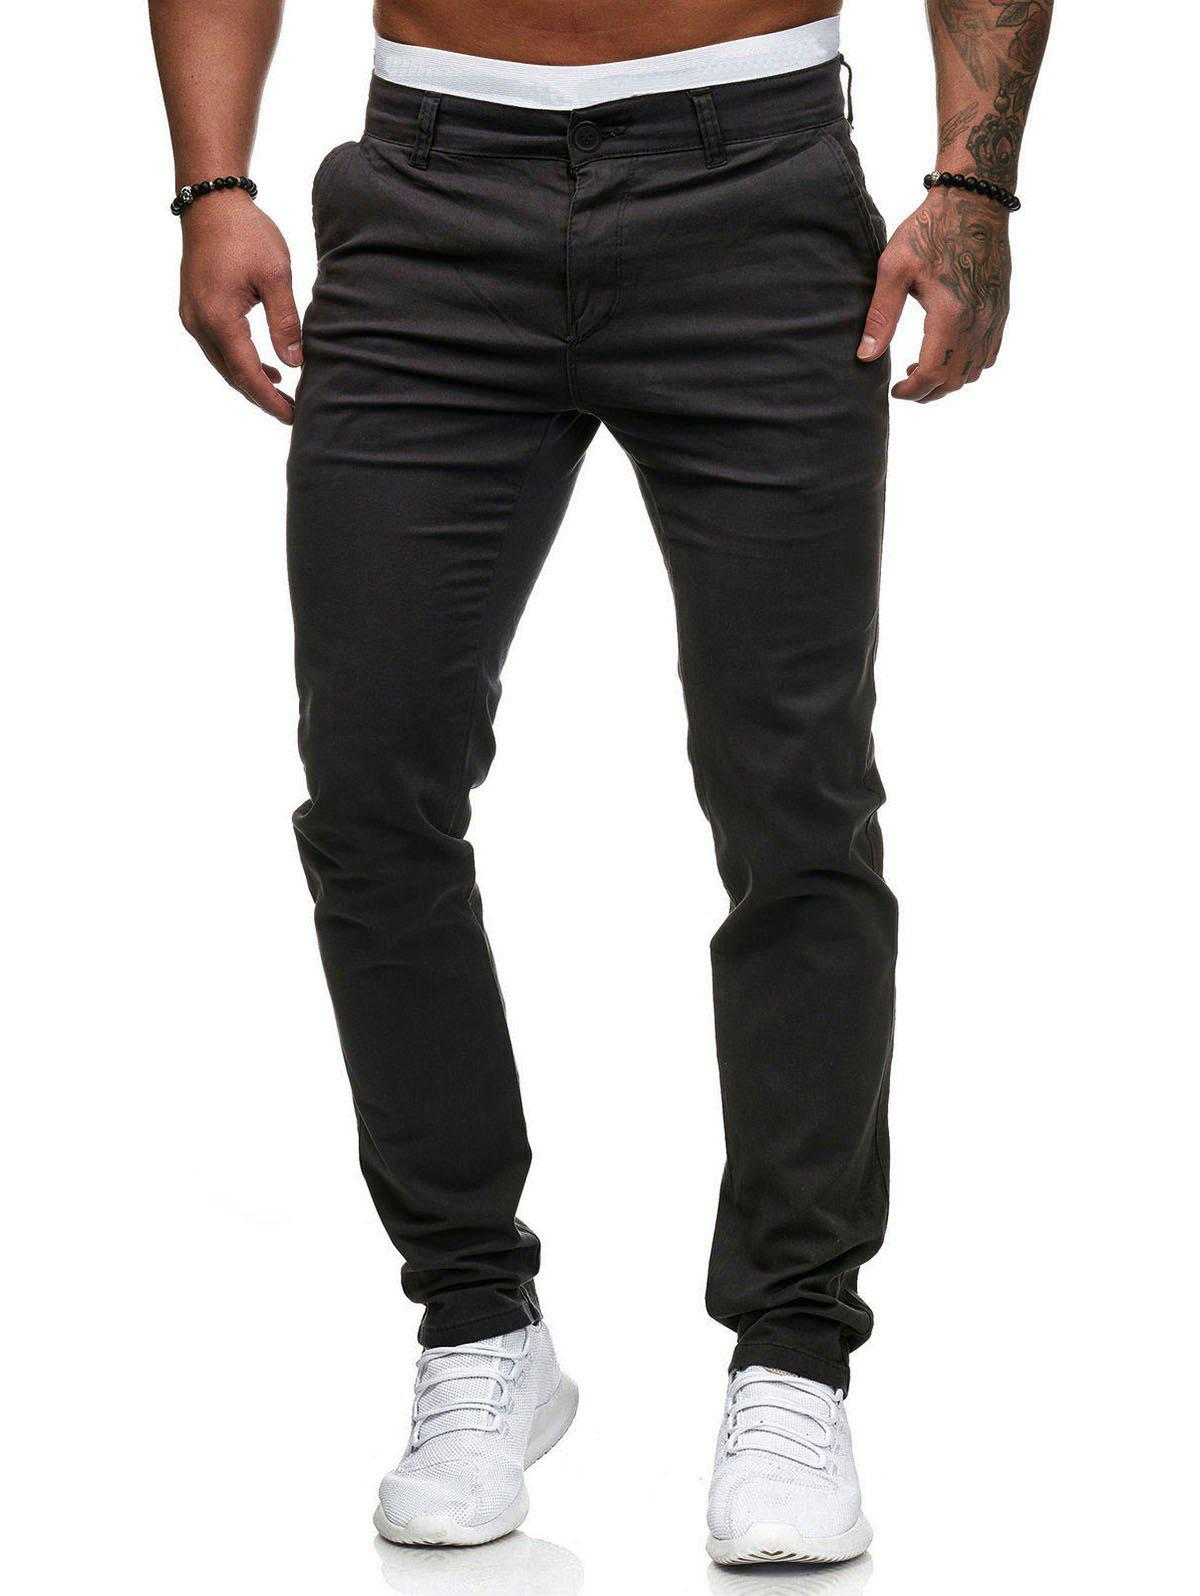 Solid Color Long Straight Casual Pants, Black